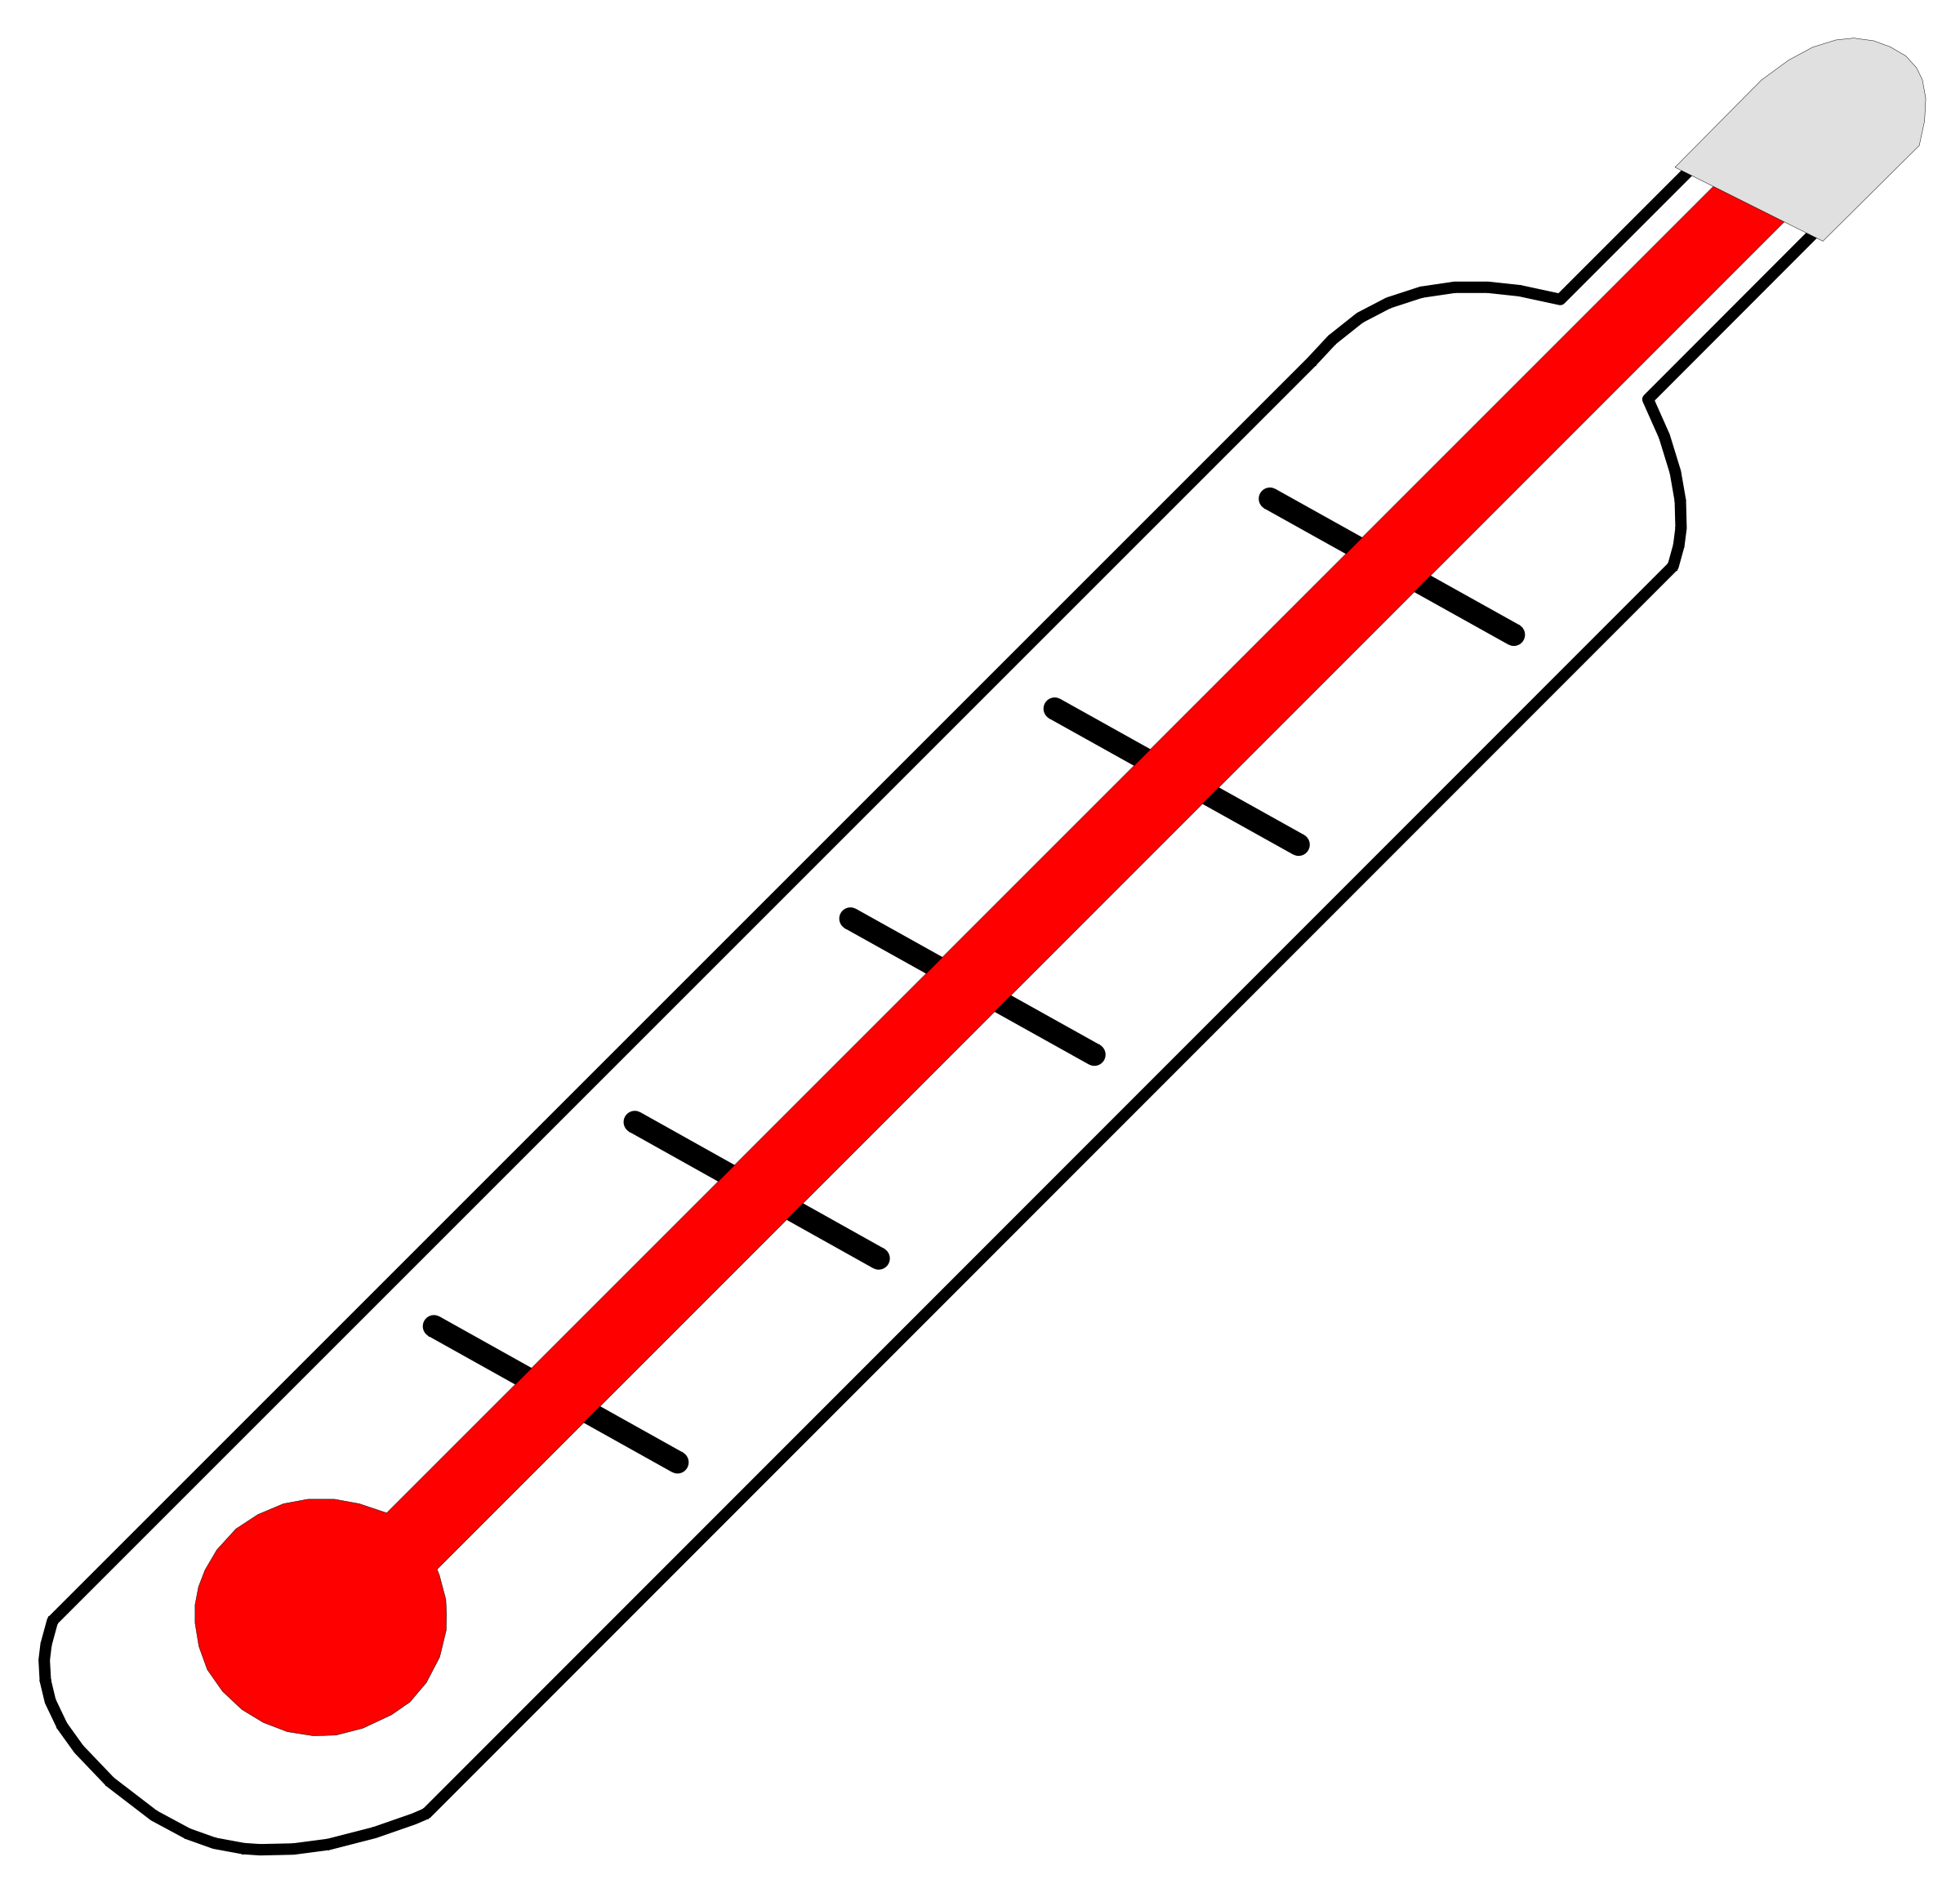 Transparent thermometer fever. Clipart hot clip arts